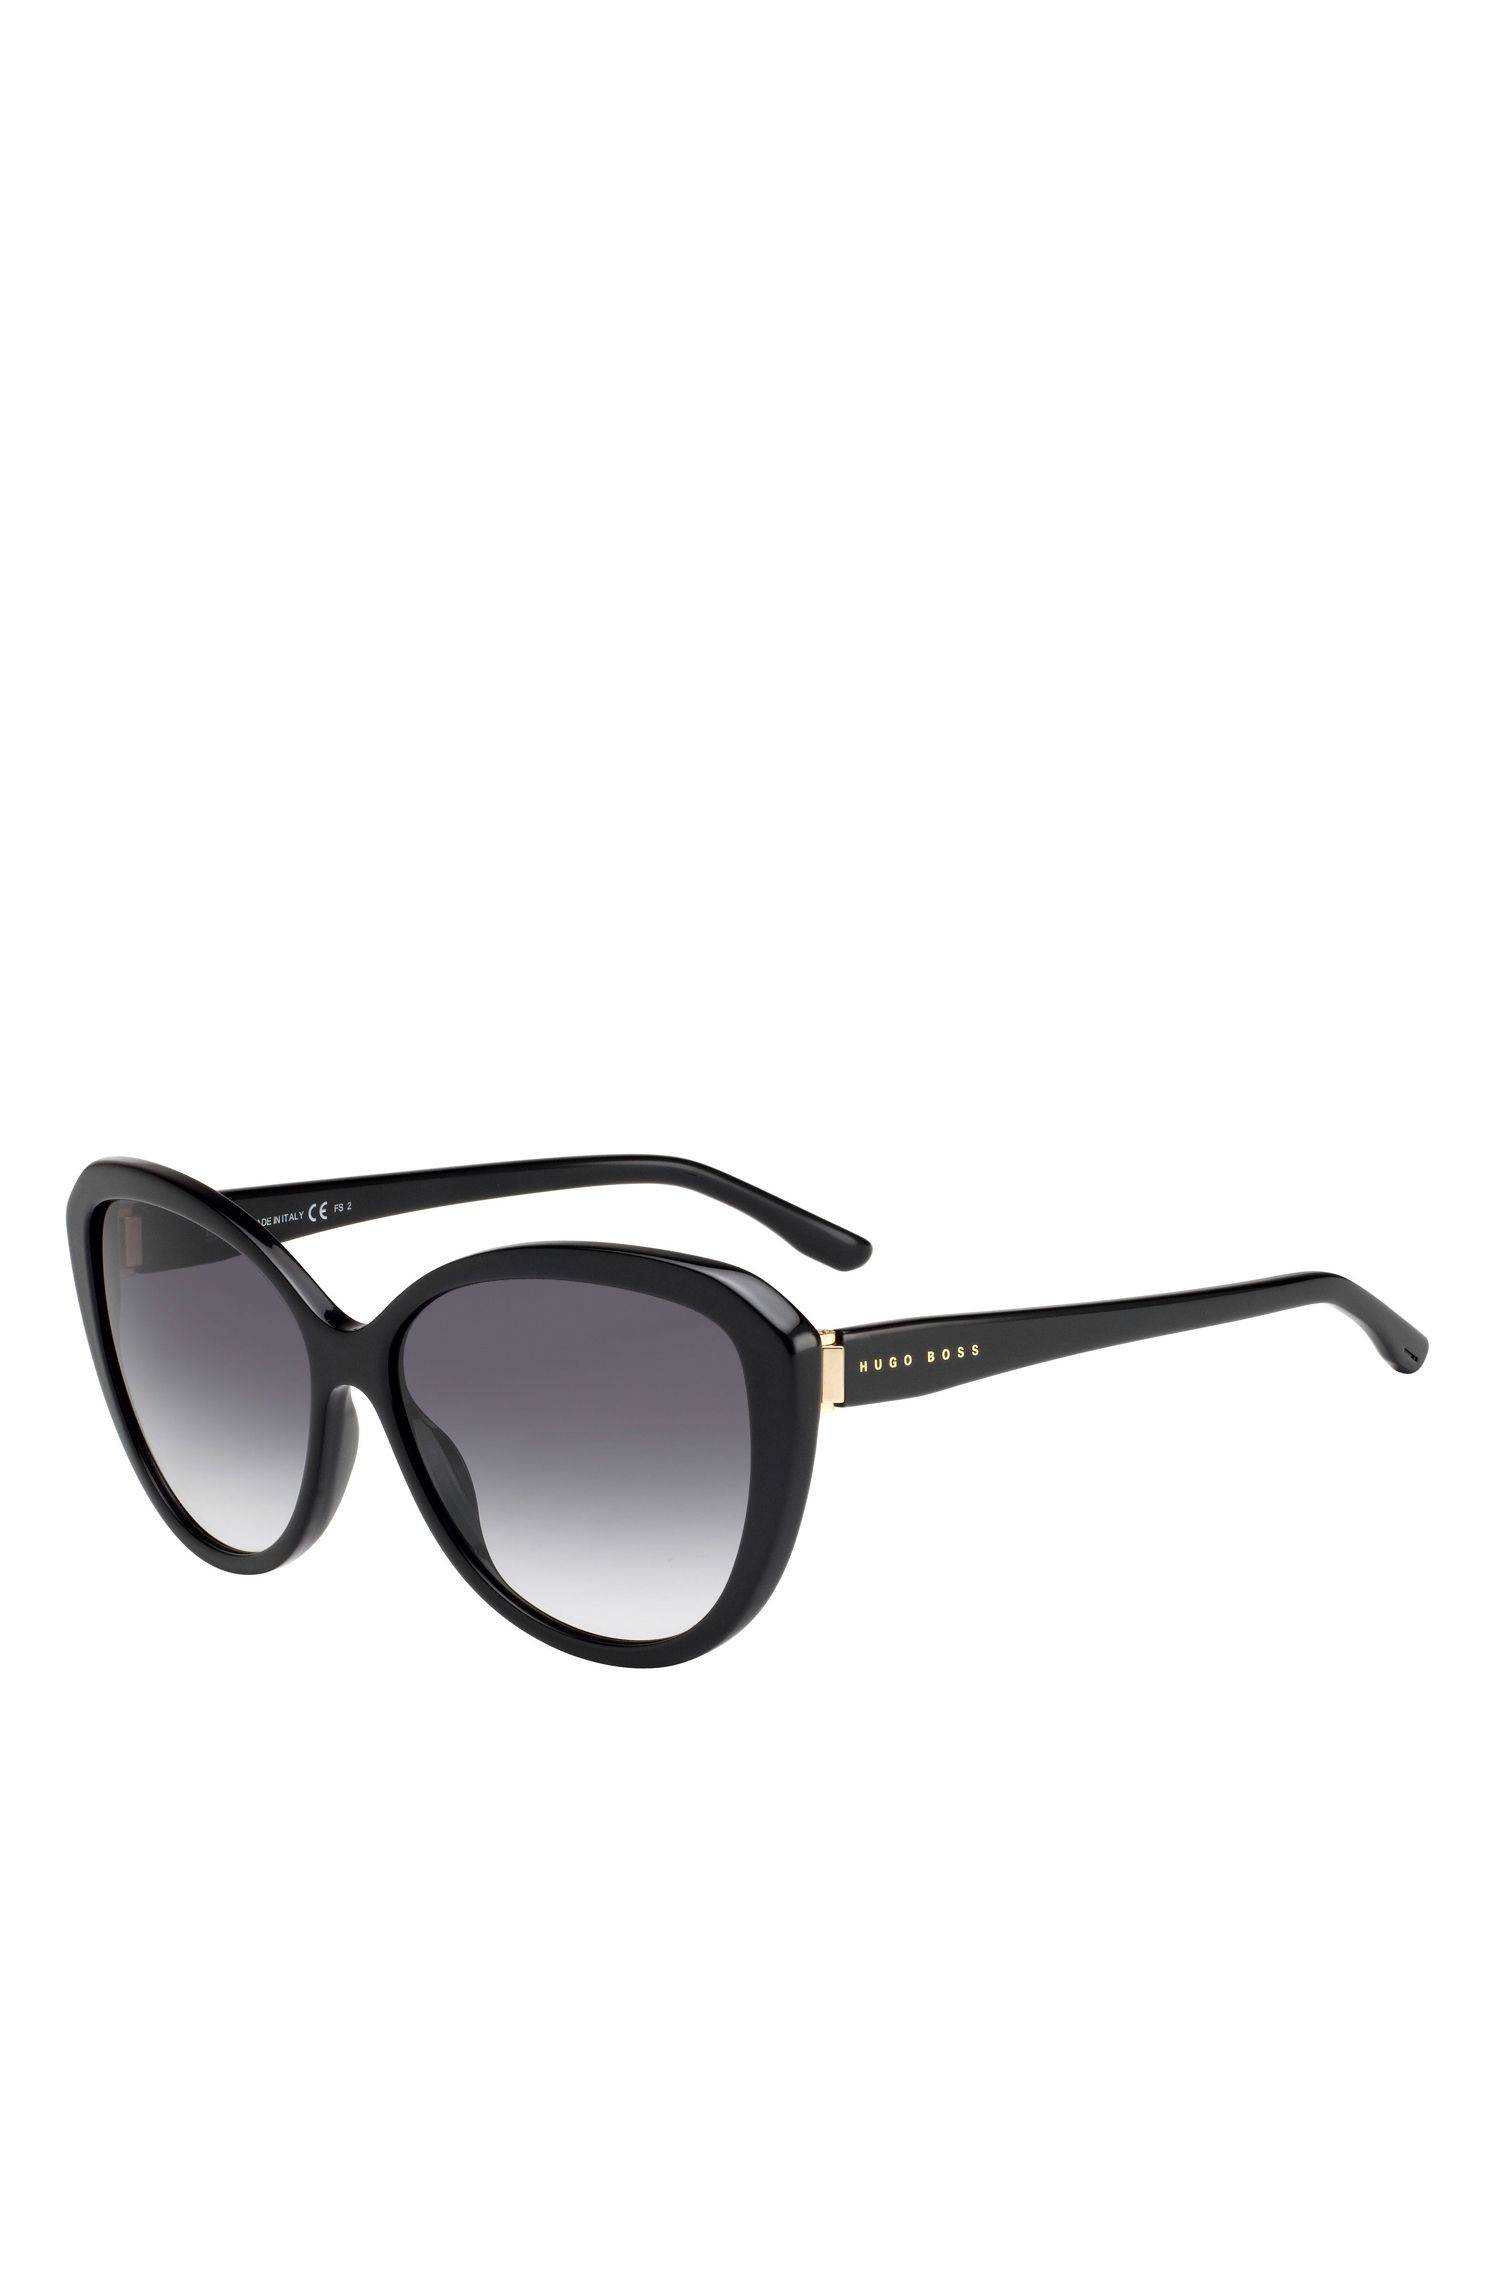 Gradient Lens Acetate Sunglasses | BOSS 0845S, Assorted-Pre-Pack